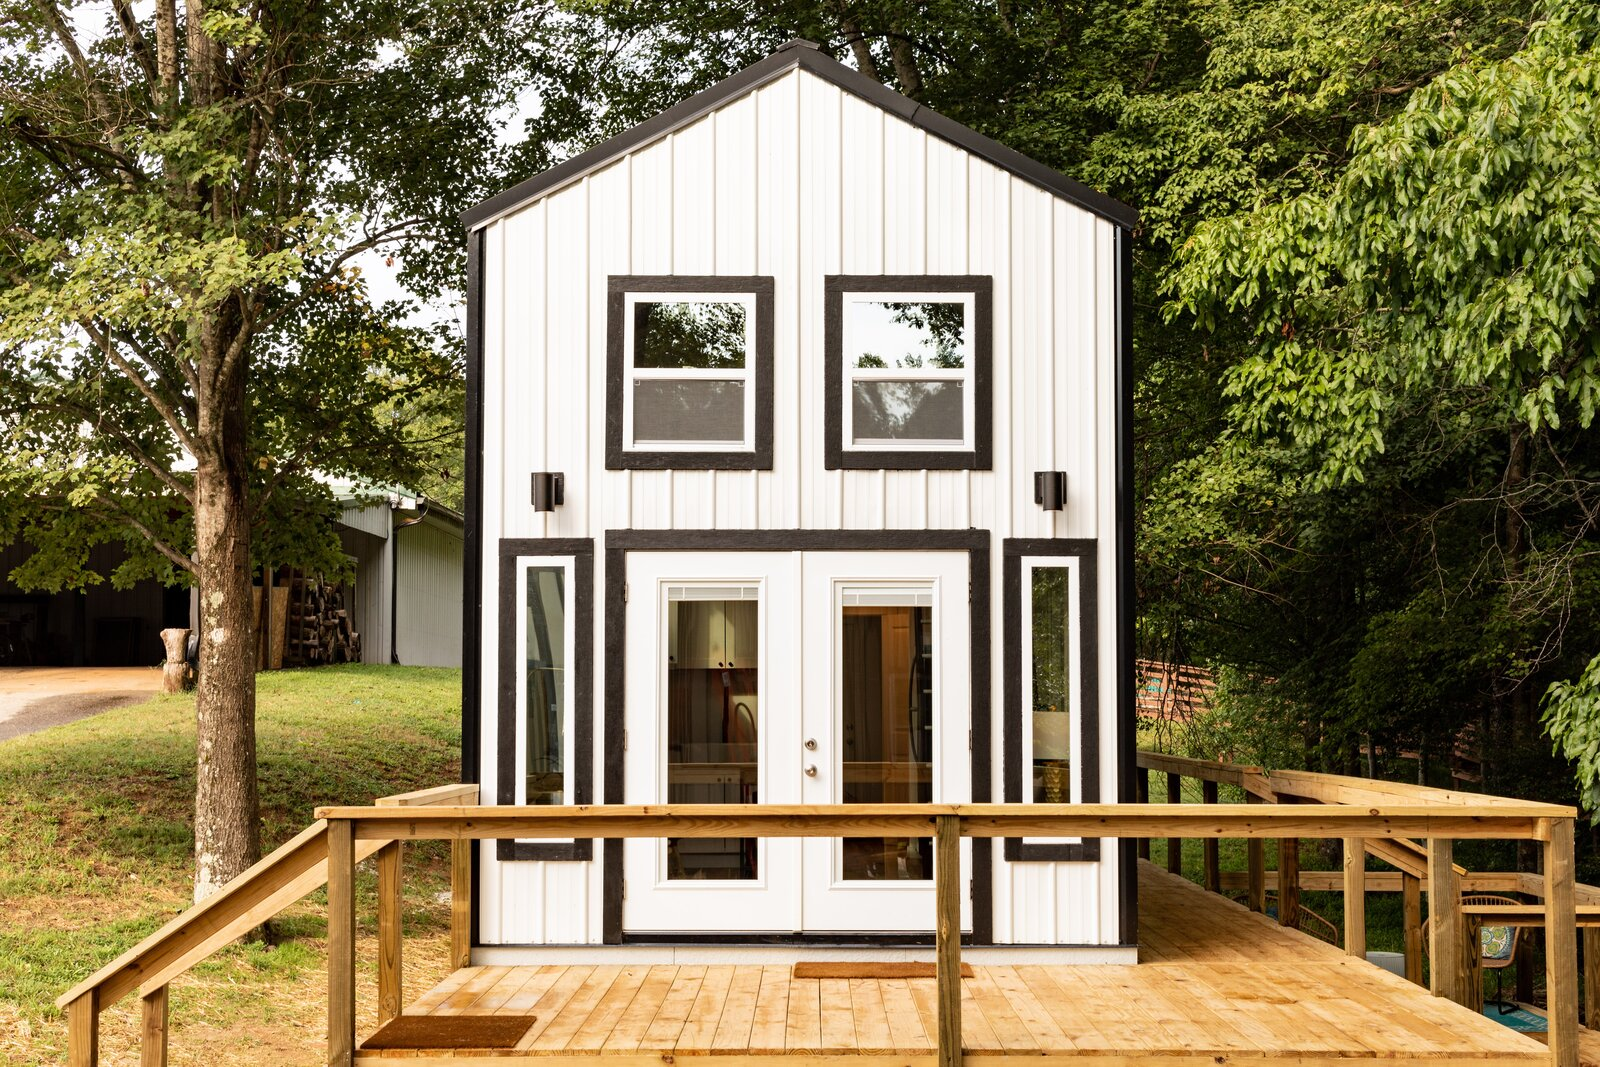 Exterior, Tiny Home Building Type, Metal Siding Material, Gable RoofLine, and Metal Roof Material The 399-square-foot homes in Greenville, South Carolina, created by Justin Draplin of Eclipse Cottages are clad in white-painted steel siding.  Photo 2 of 13 in This South Carolina Company Offers Tiny Cottages With Off-Grid Capabilities